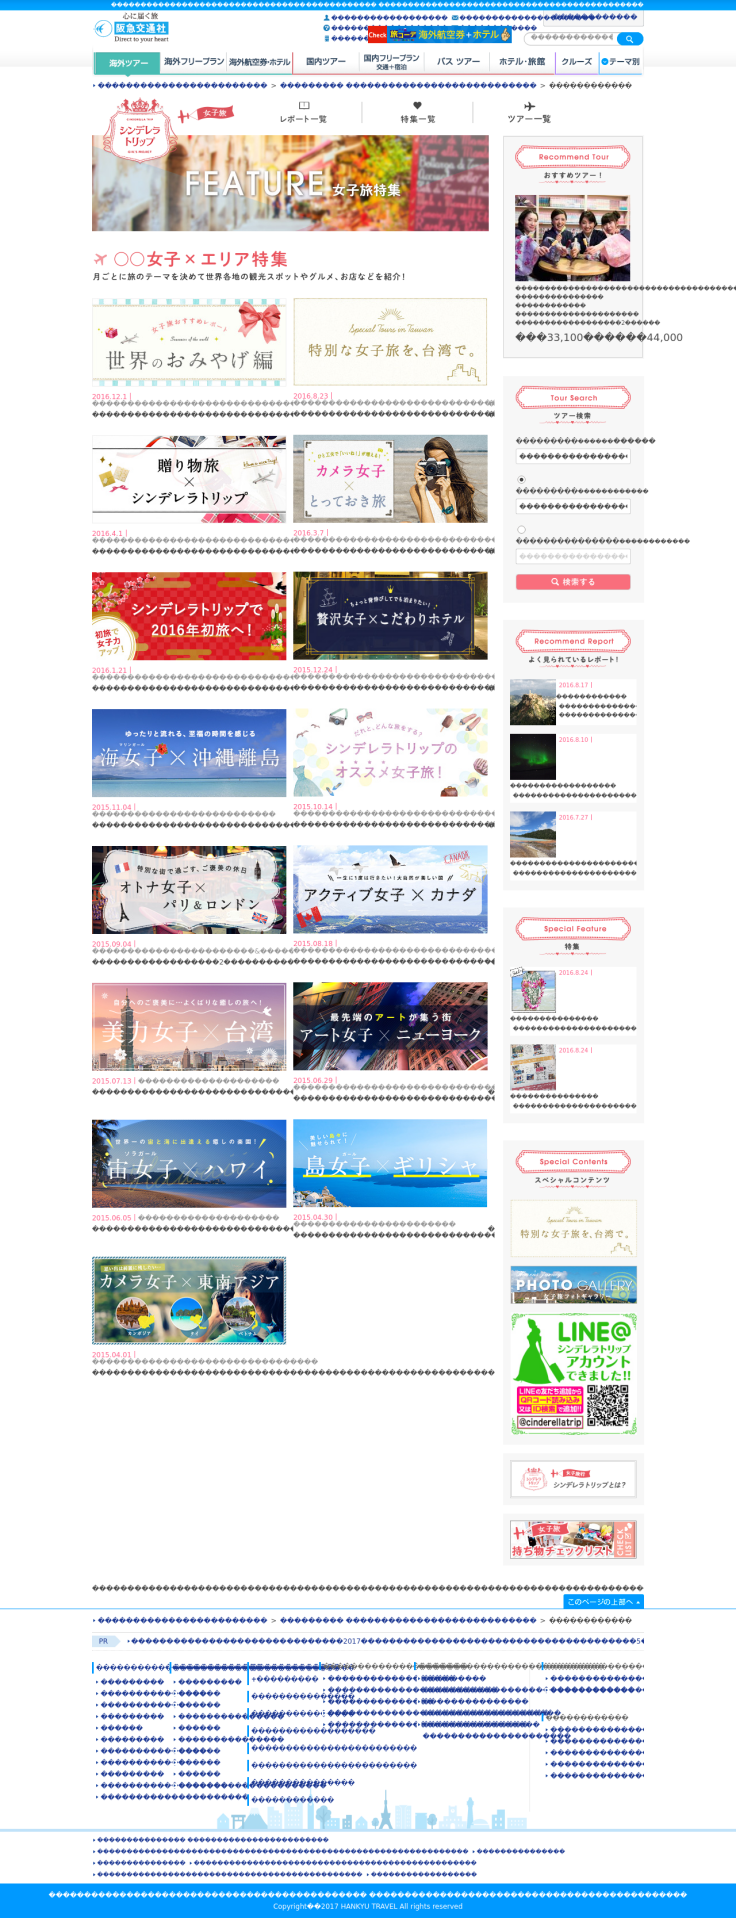 Website'http%3A%2F%2Fwww.hankyu-travel.com%2Fjyoshitabi%2Ffeature%2F' snapped on Page2images!